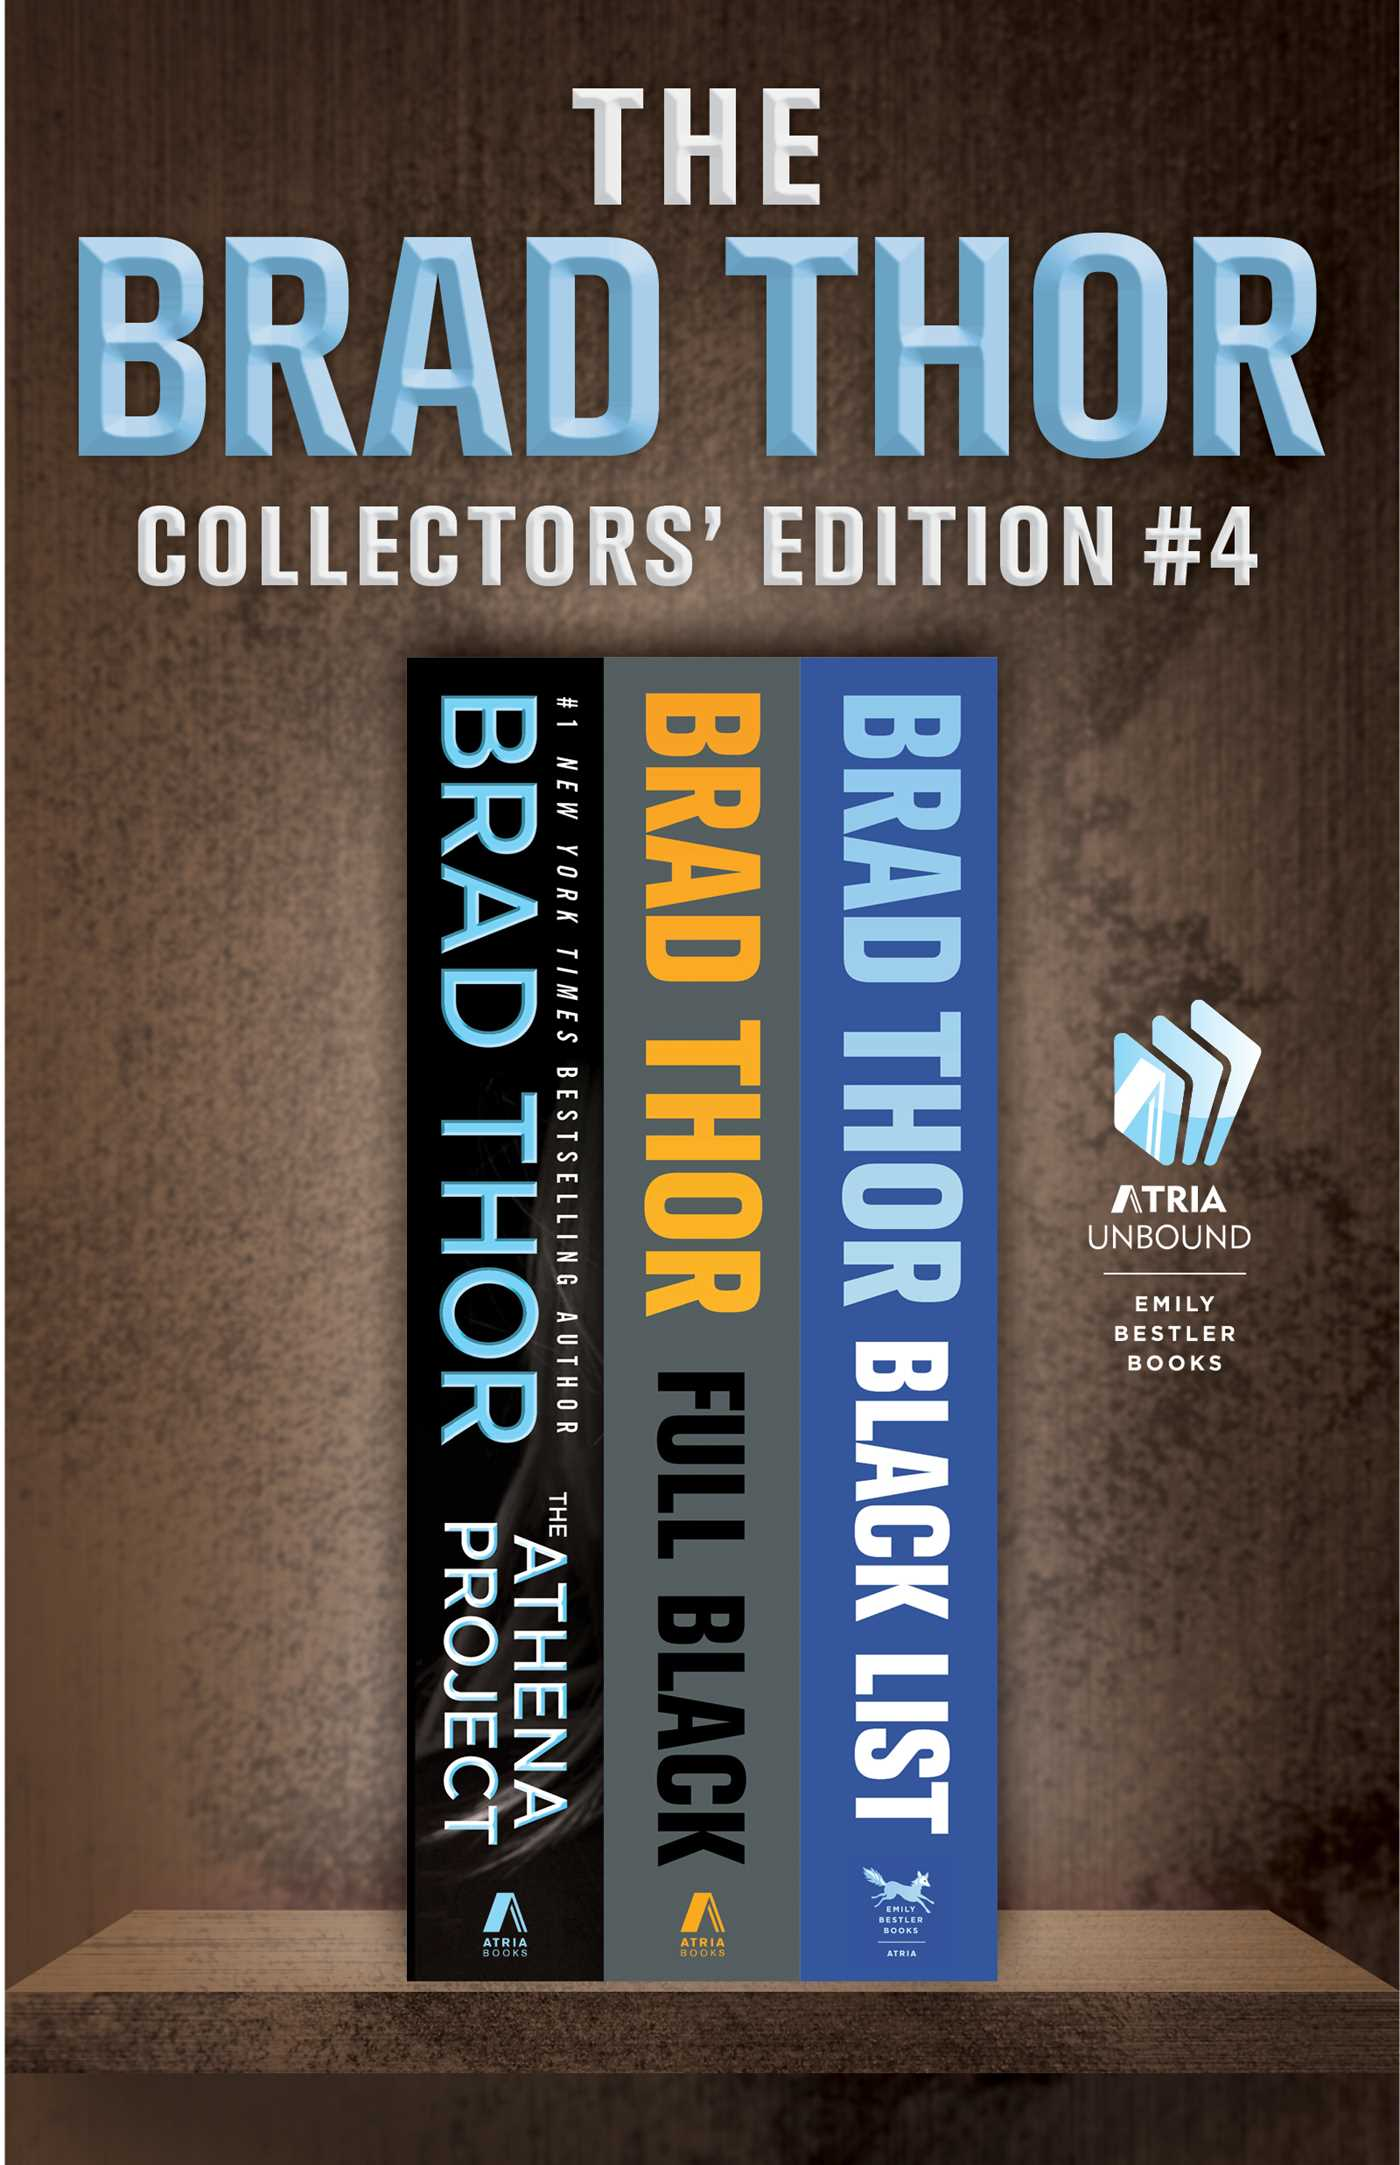 Brad-thor-collectors-edition-4-9781476703848_hr